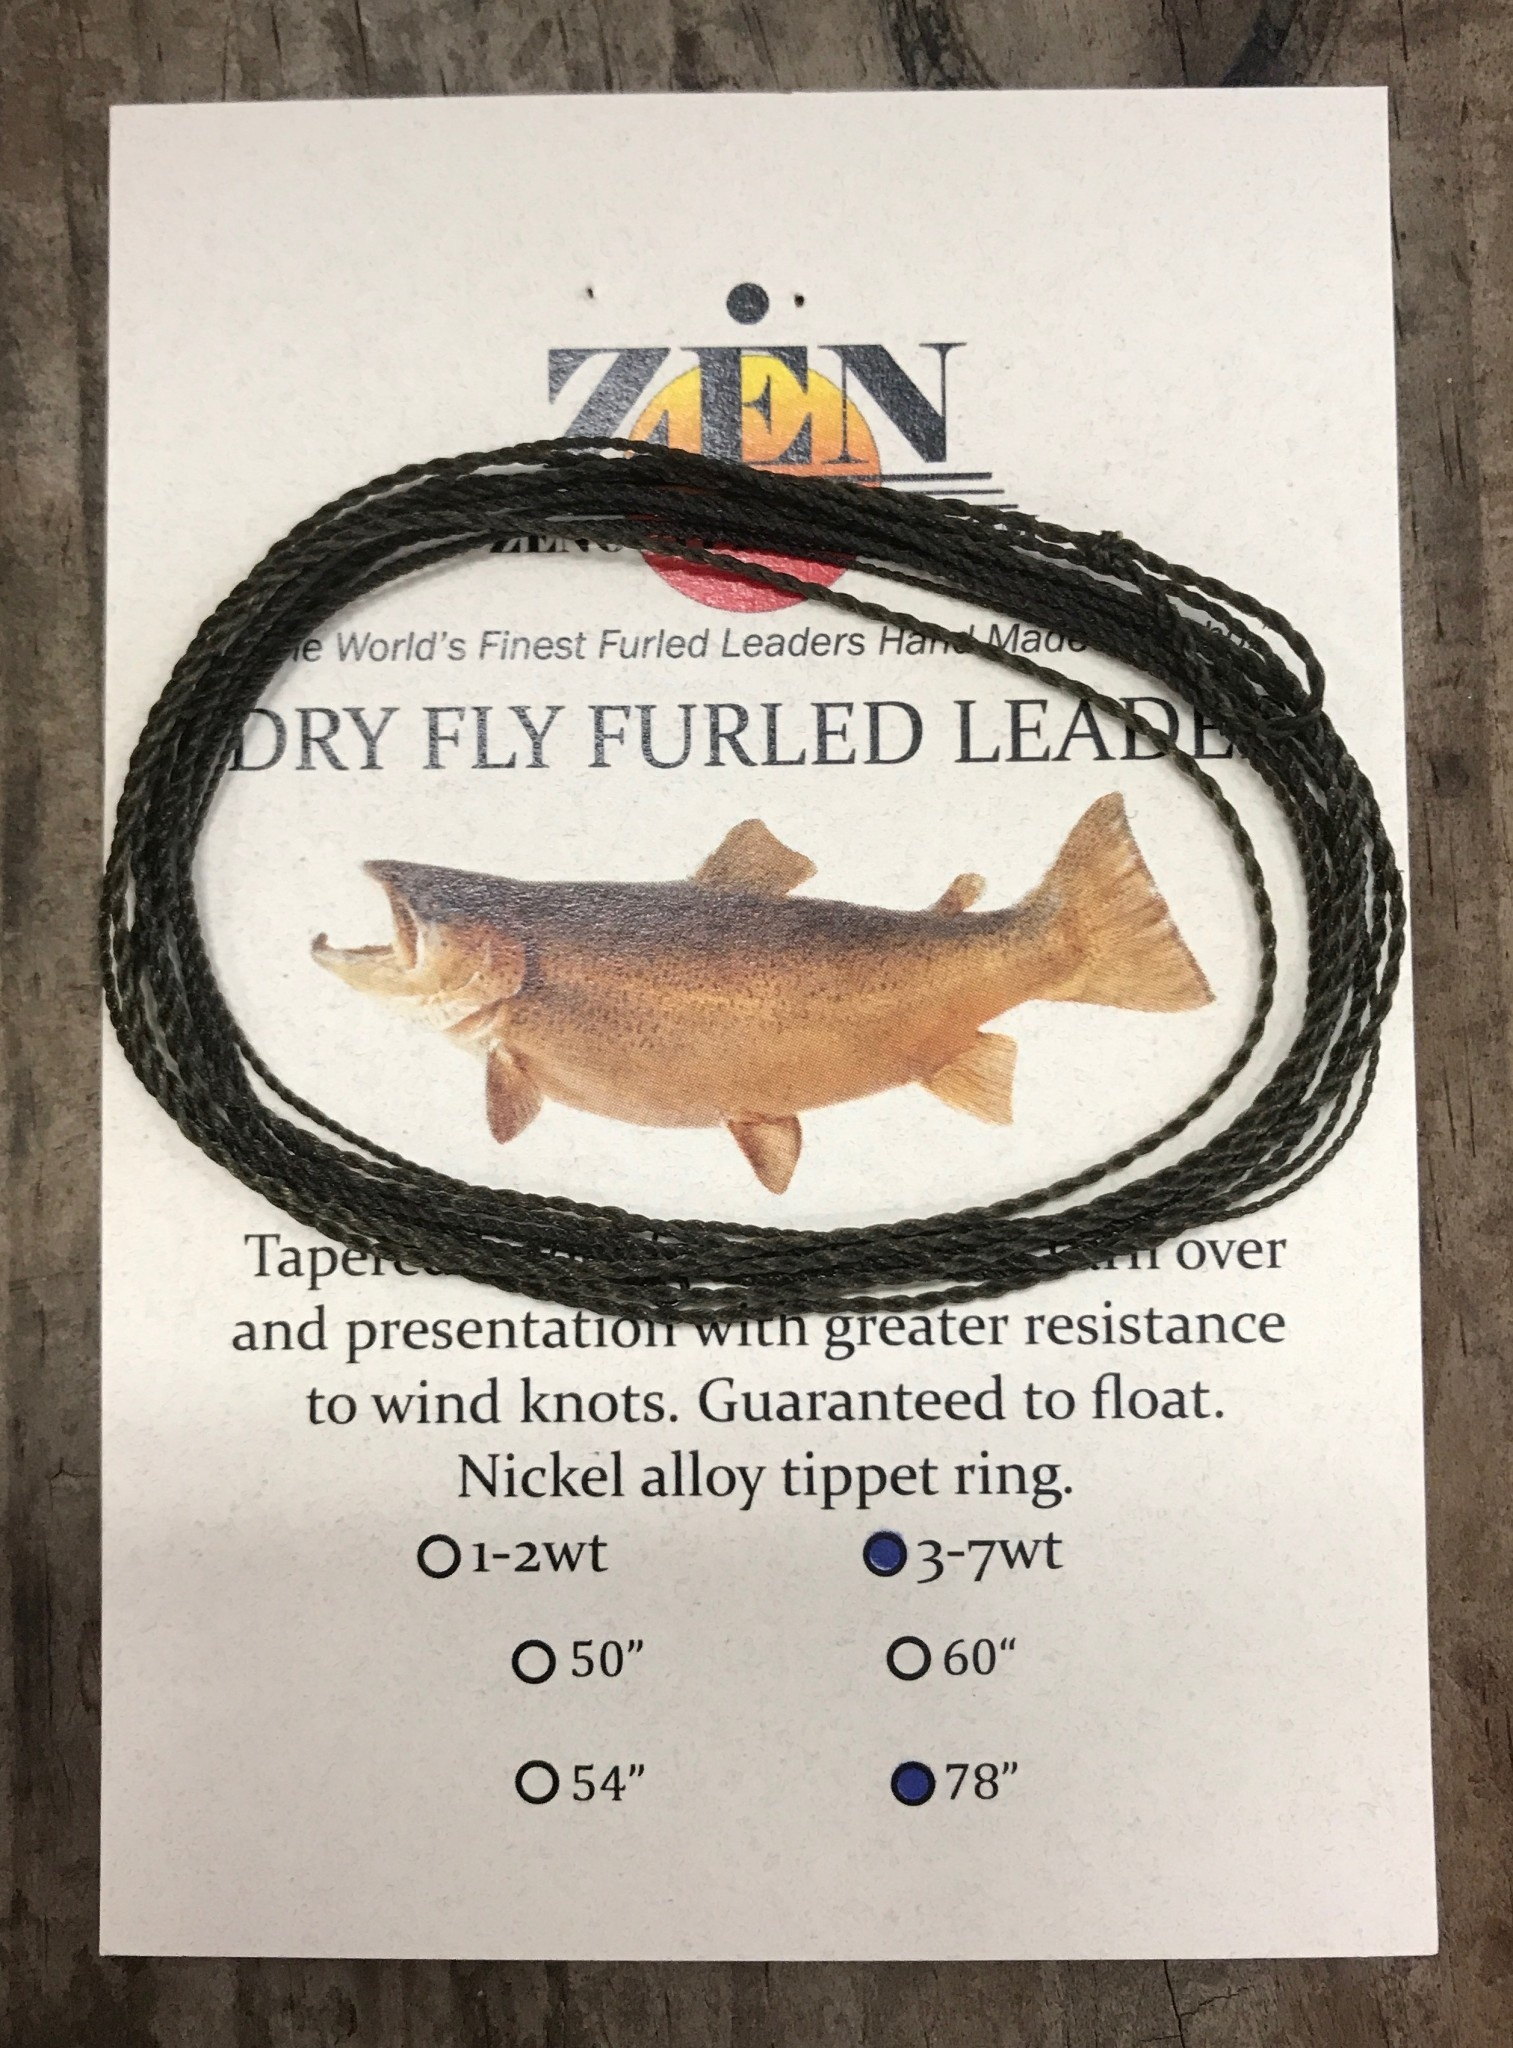 Zen Furled Dry Fly Leaders